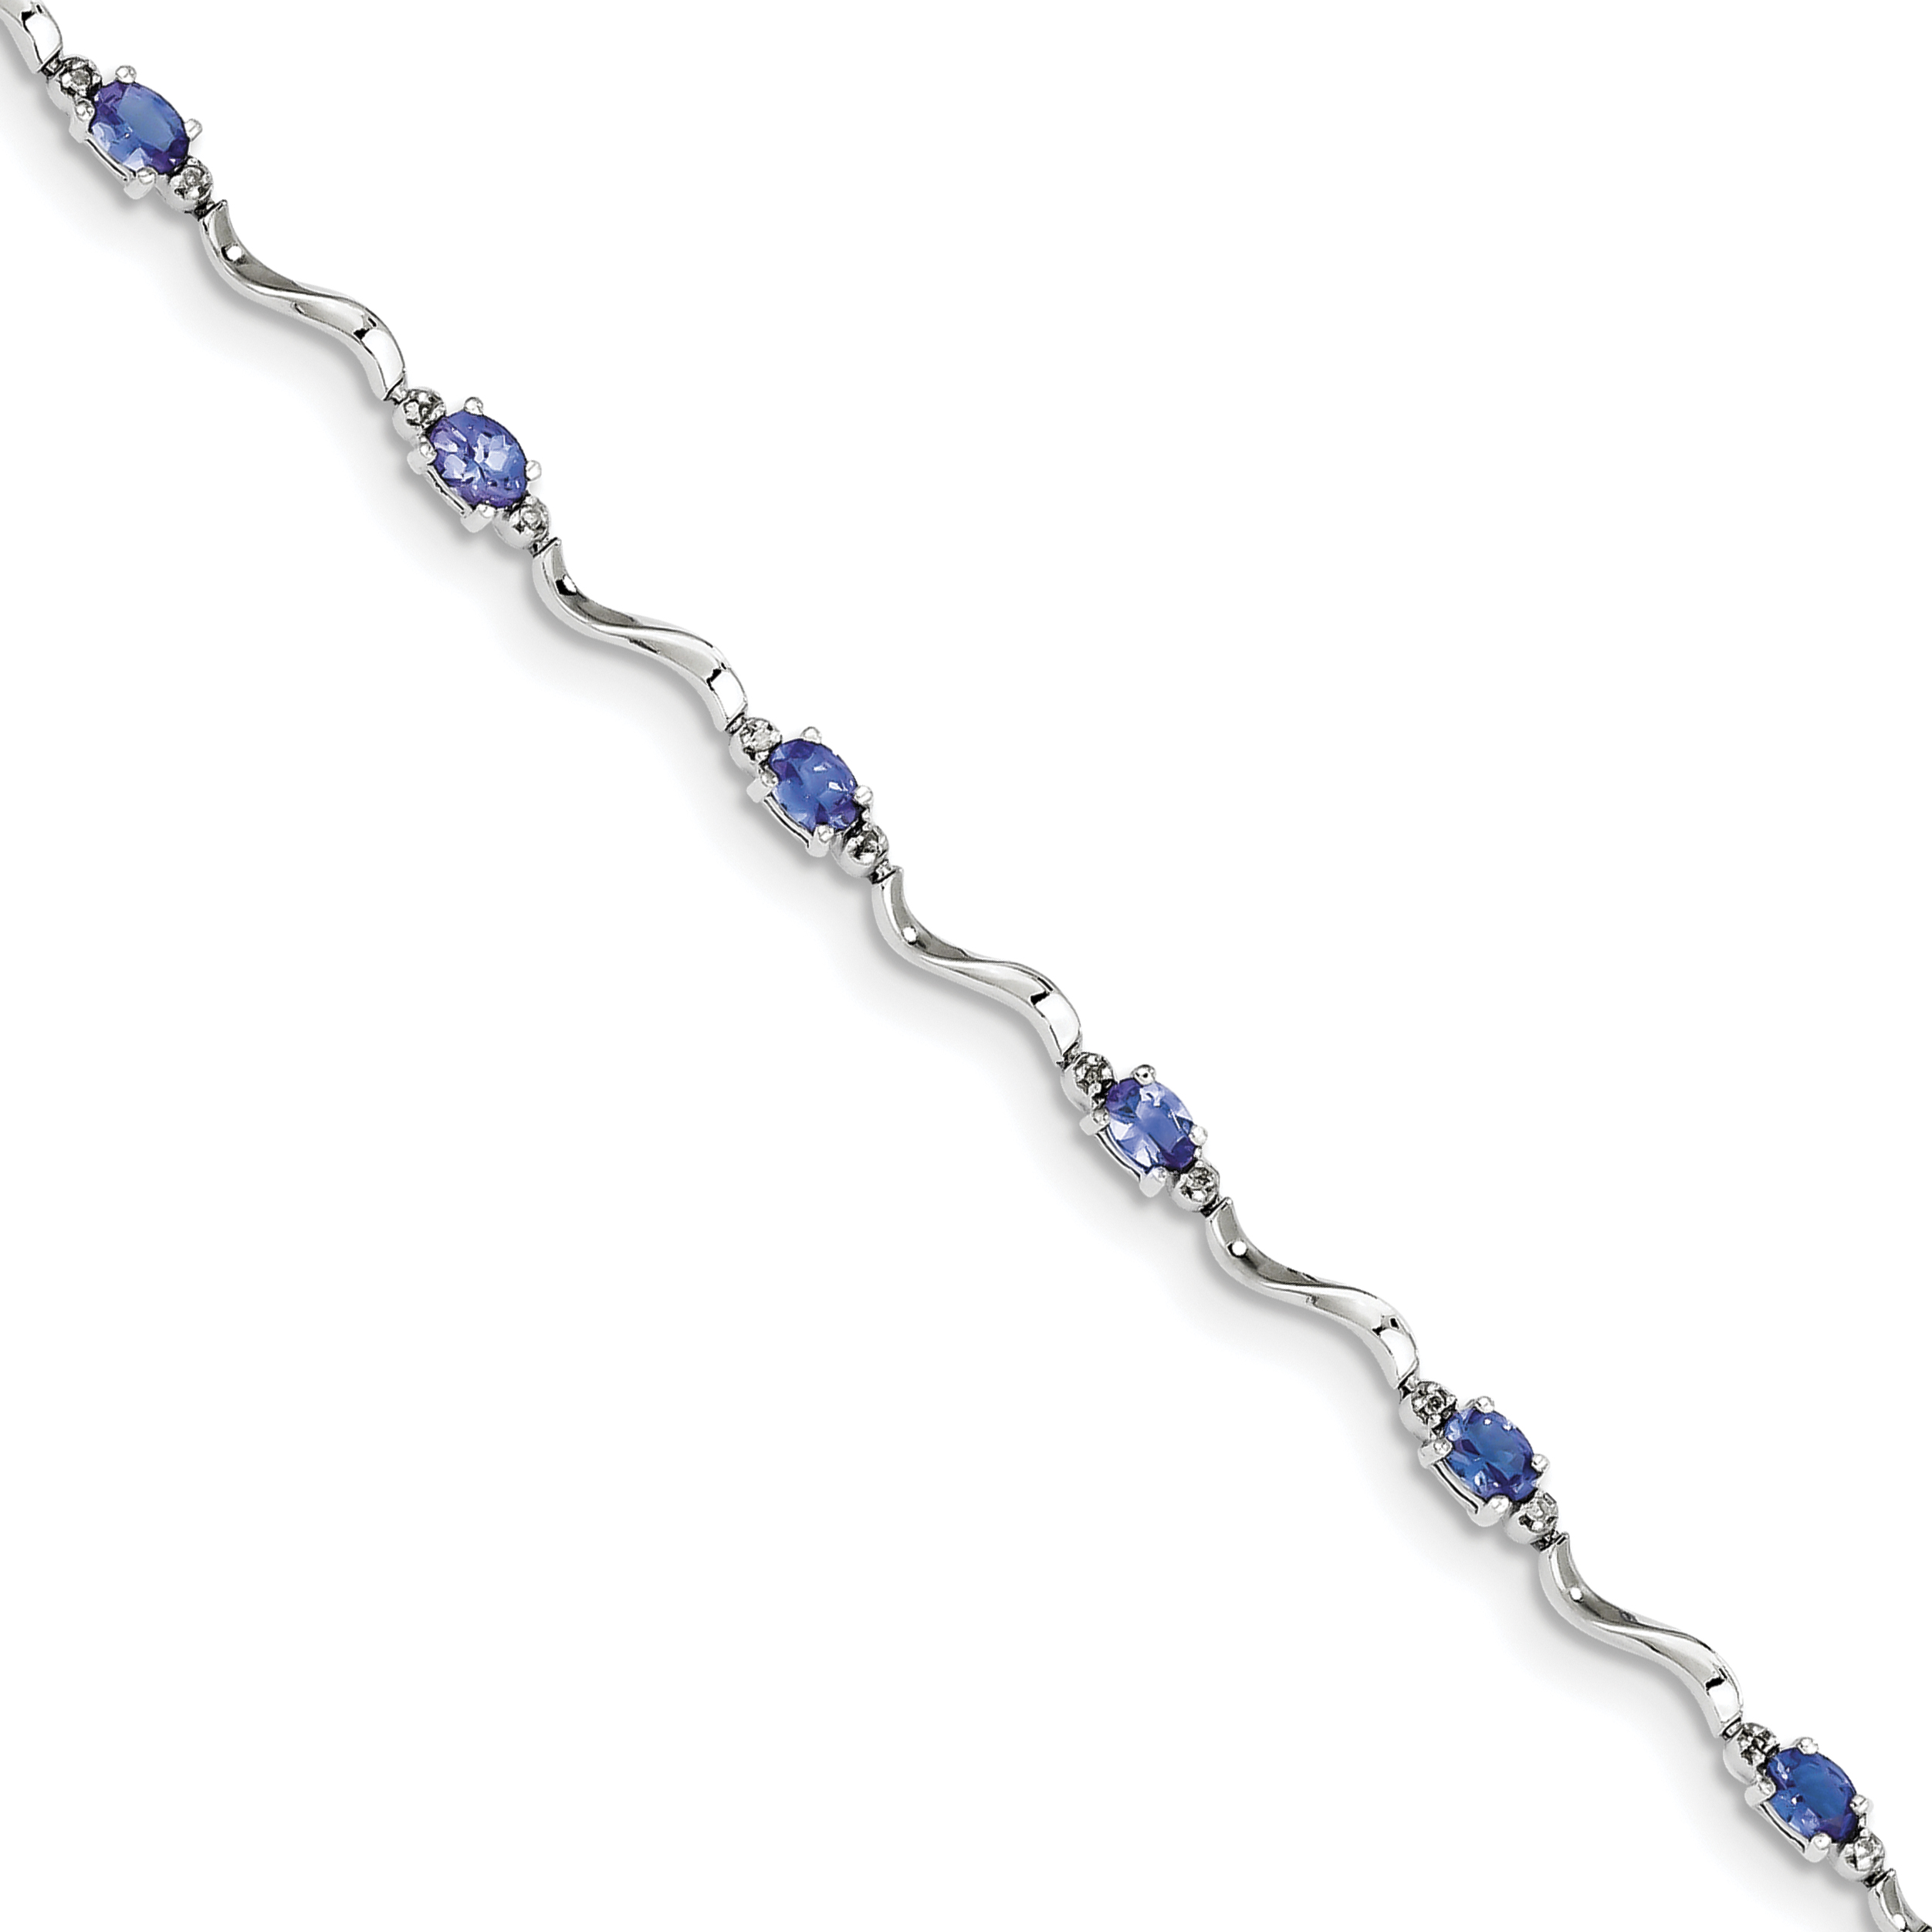 Sterling Silver Rhodium Plated Diamond and Tanzanite Bracelet by CoutureJewelers